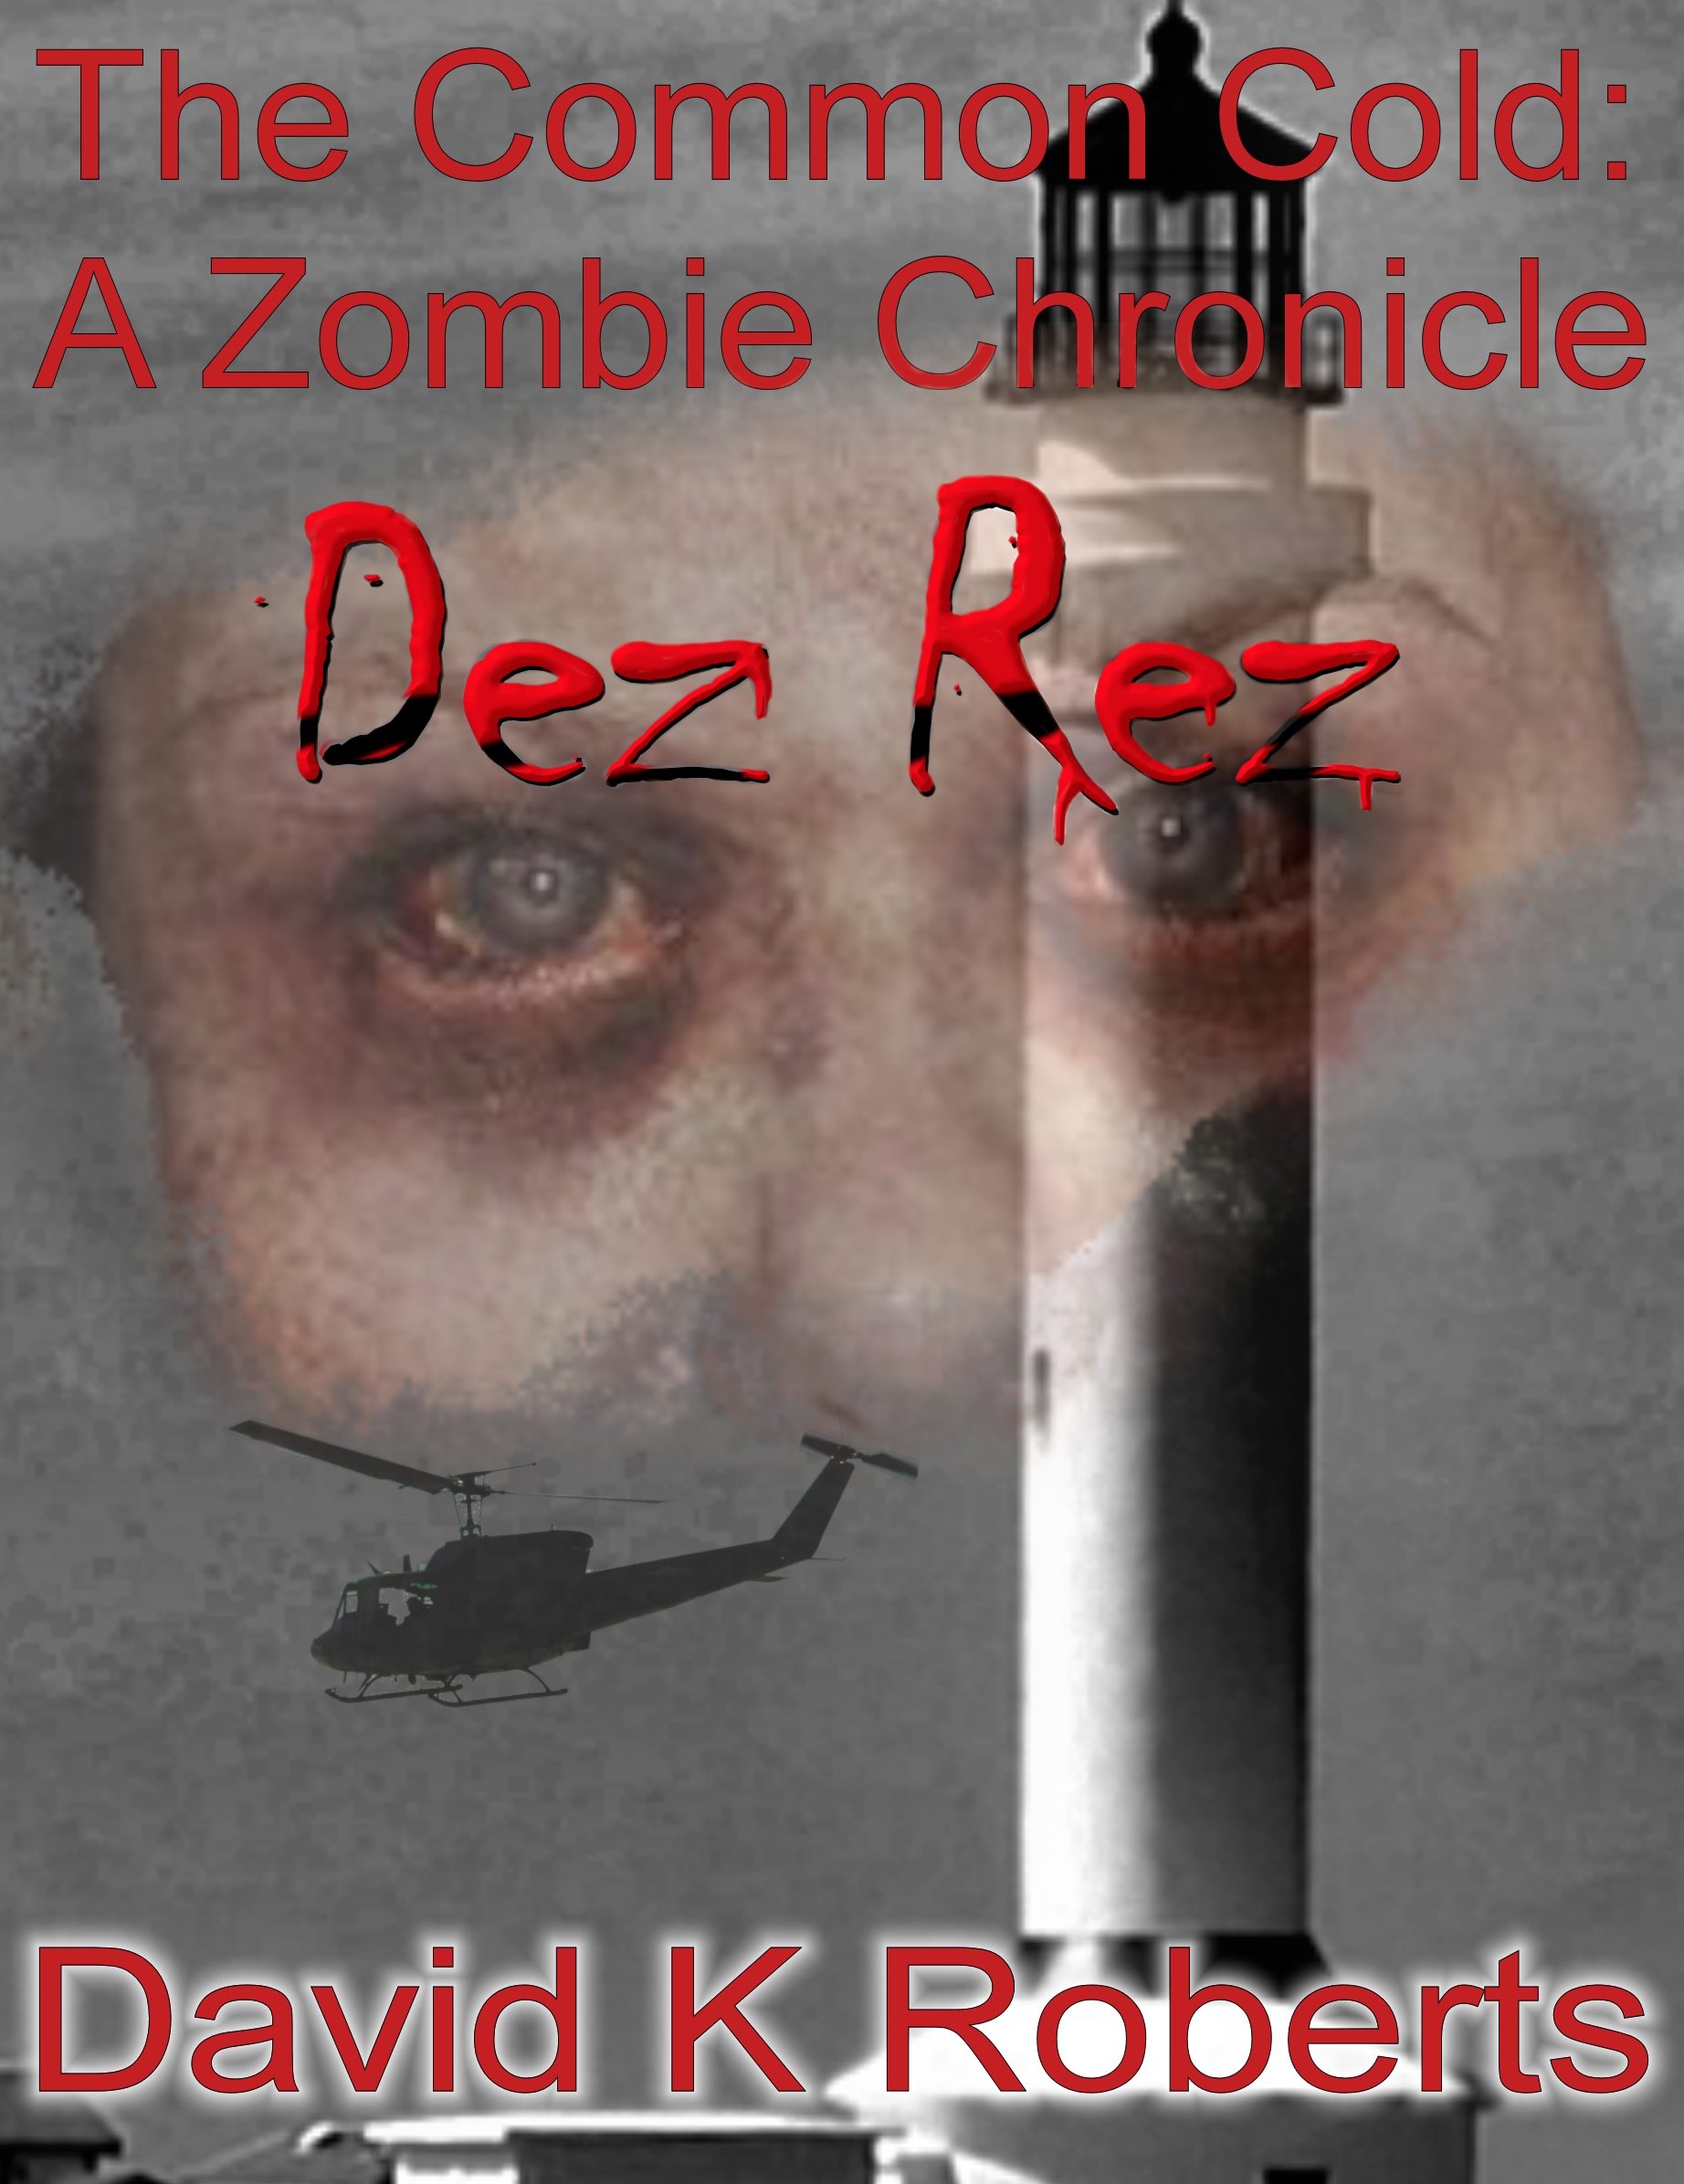 the common cold zombie chronicle dez rez